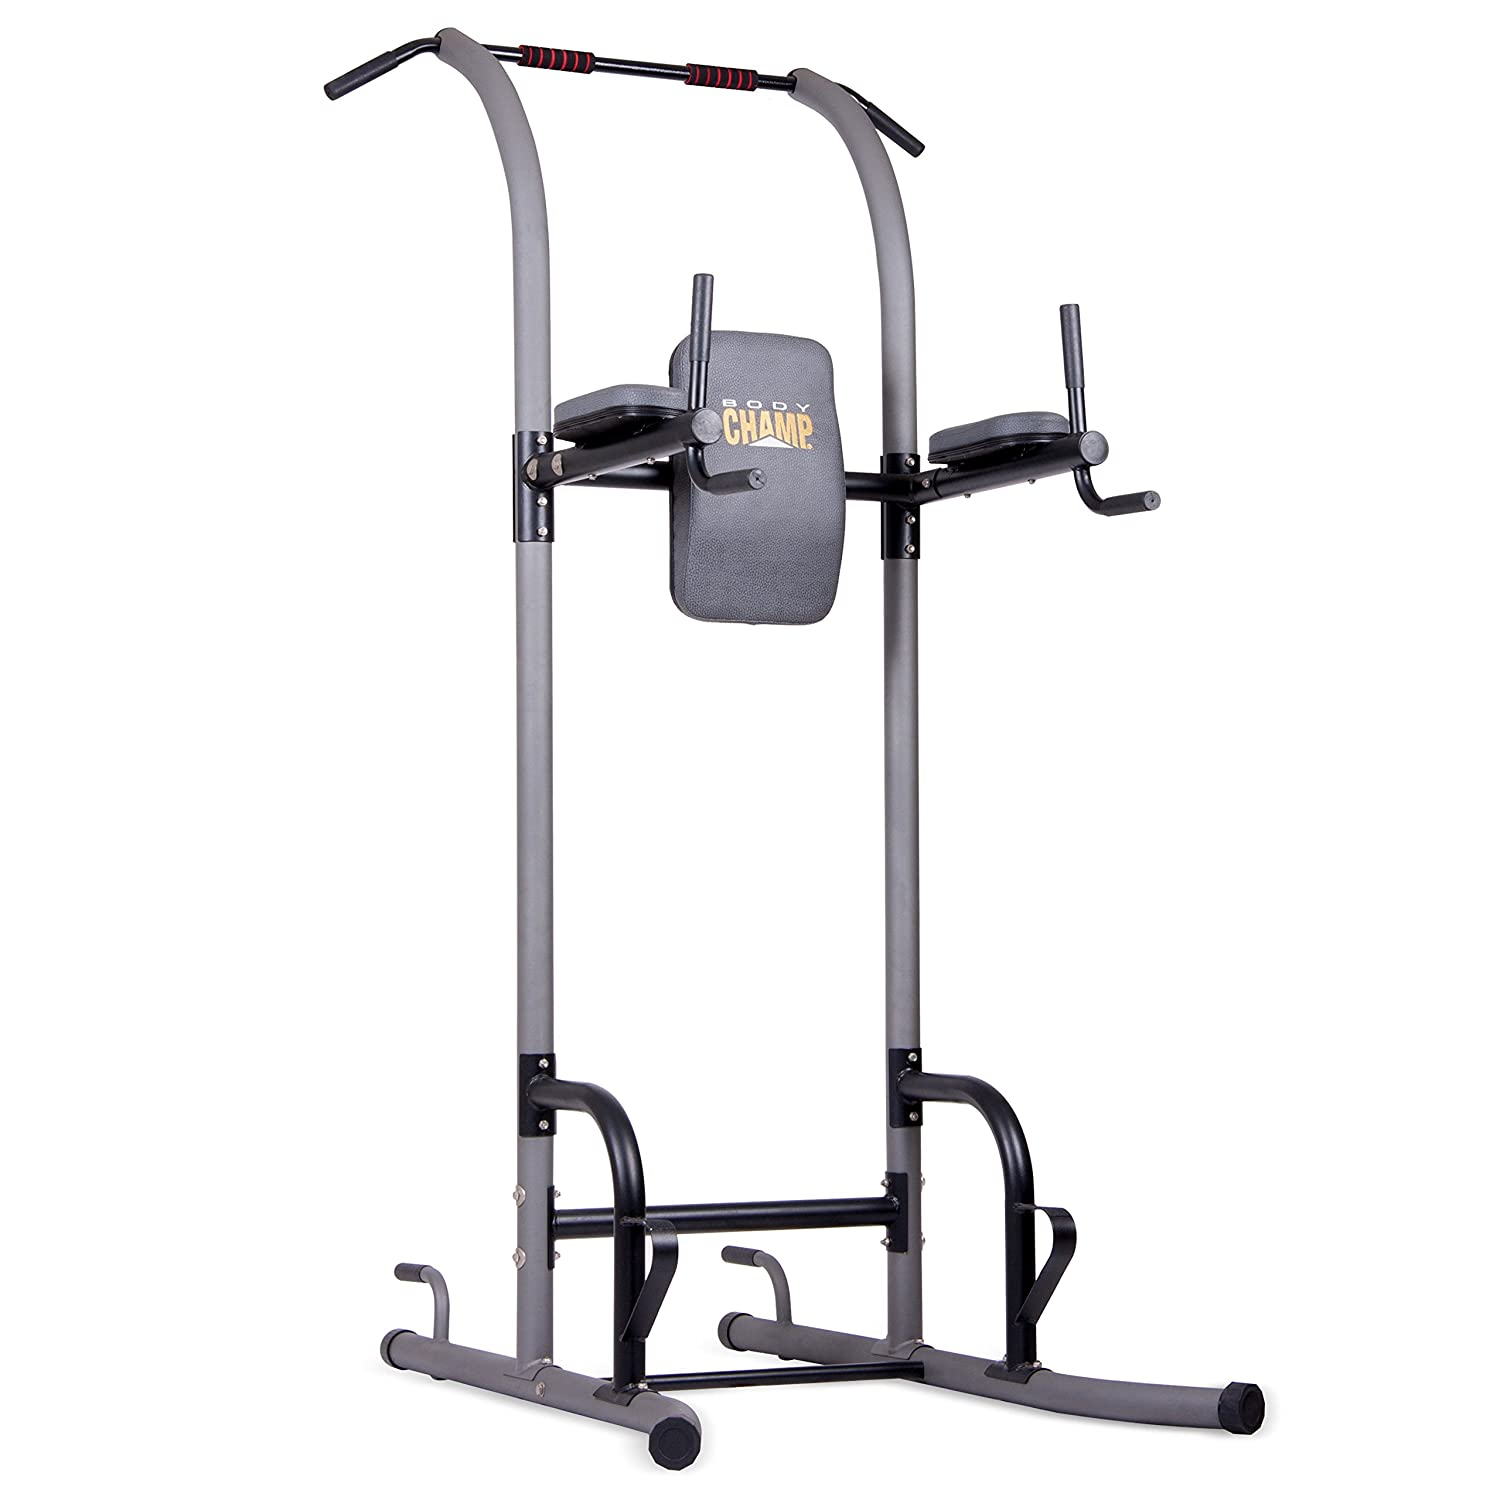 Amazon.com : Body Champ VKR1010 Fitness Multi function Power Tower/Multi  station for Home Office Gym Dip Stands Pull Up Push up VKR : Exercise Power  Stands ...